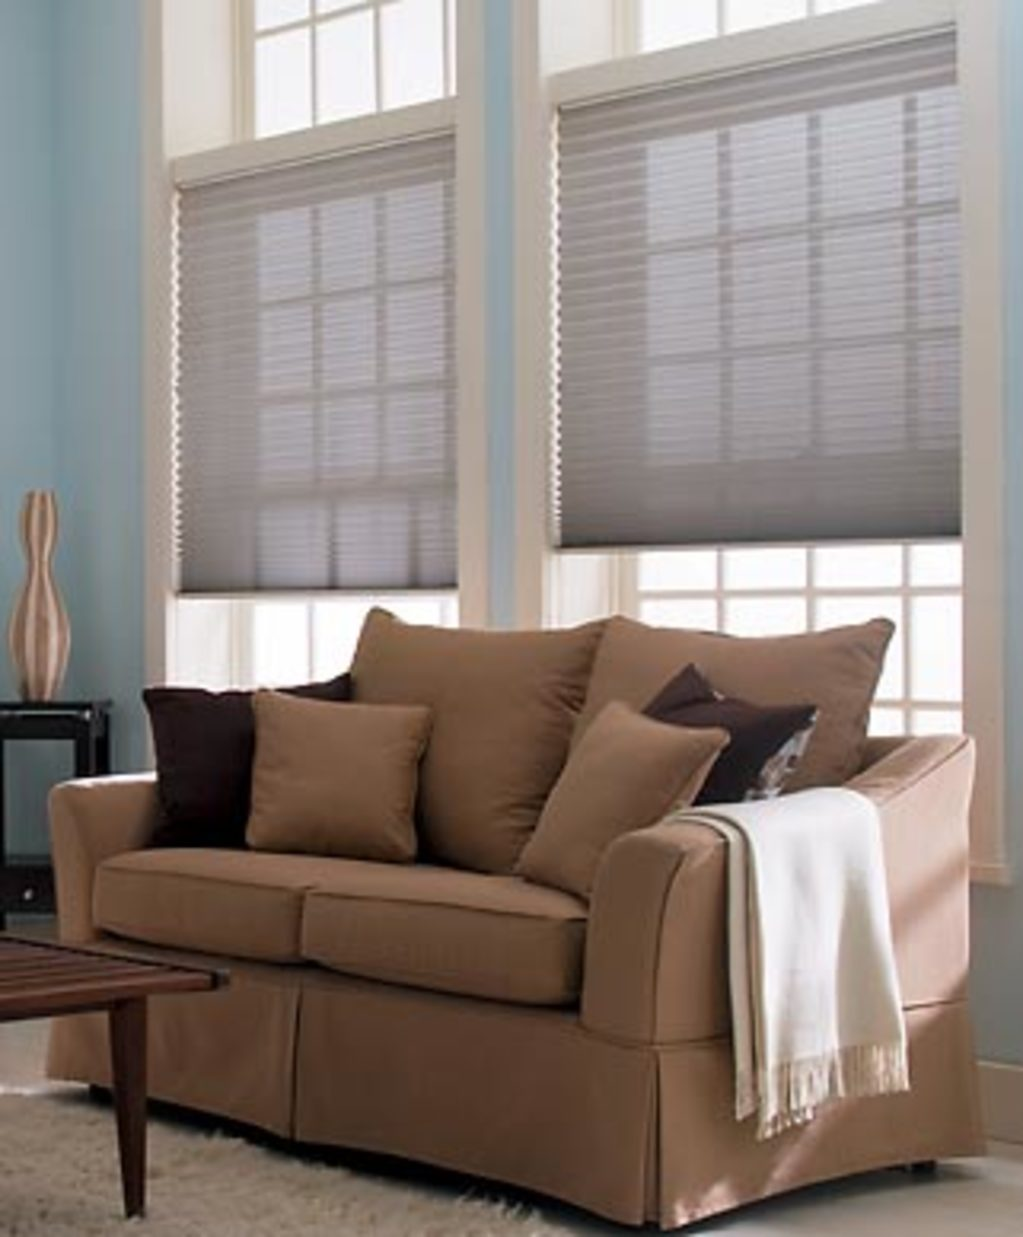 Payless Verticals & Blinds - Roman Shades